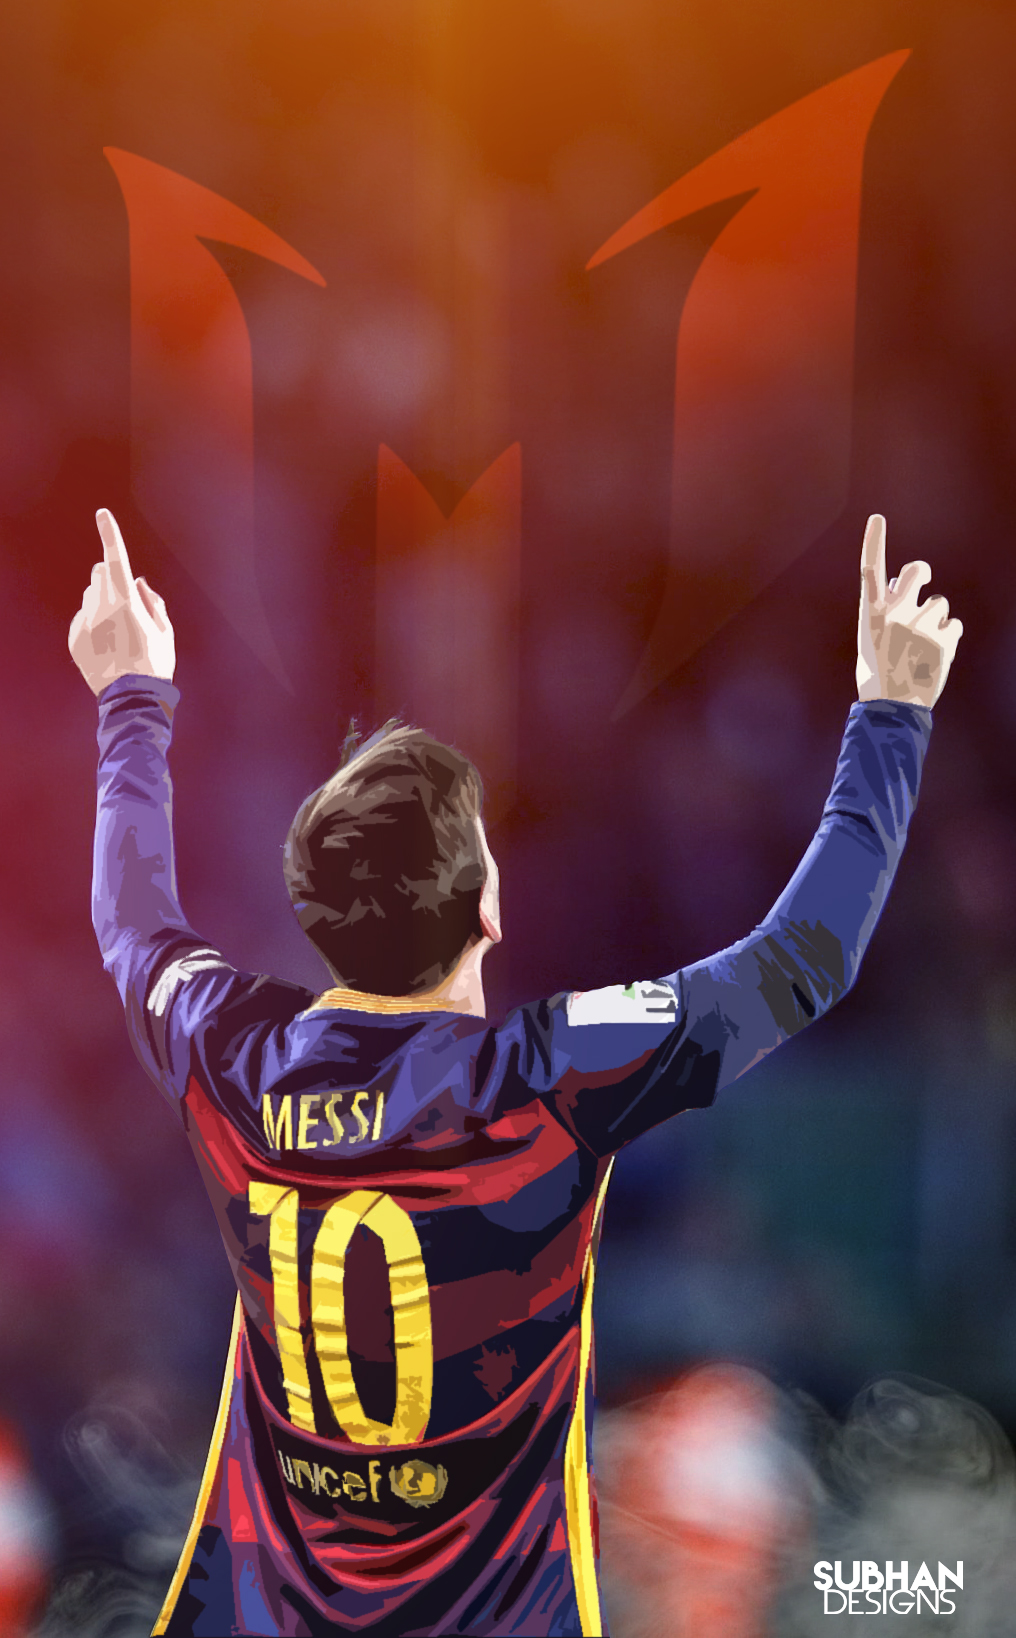 Messi Mobile Wallpaper 2016 By Subhan22 On Deviantart